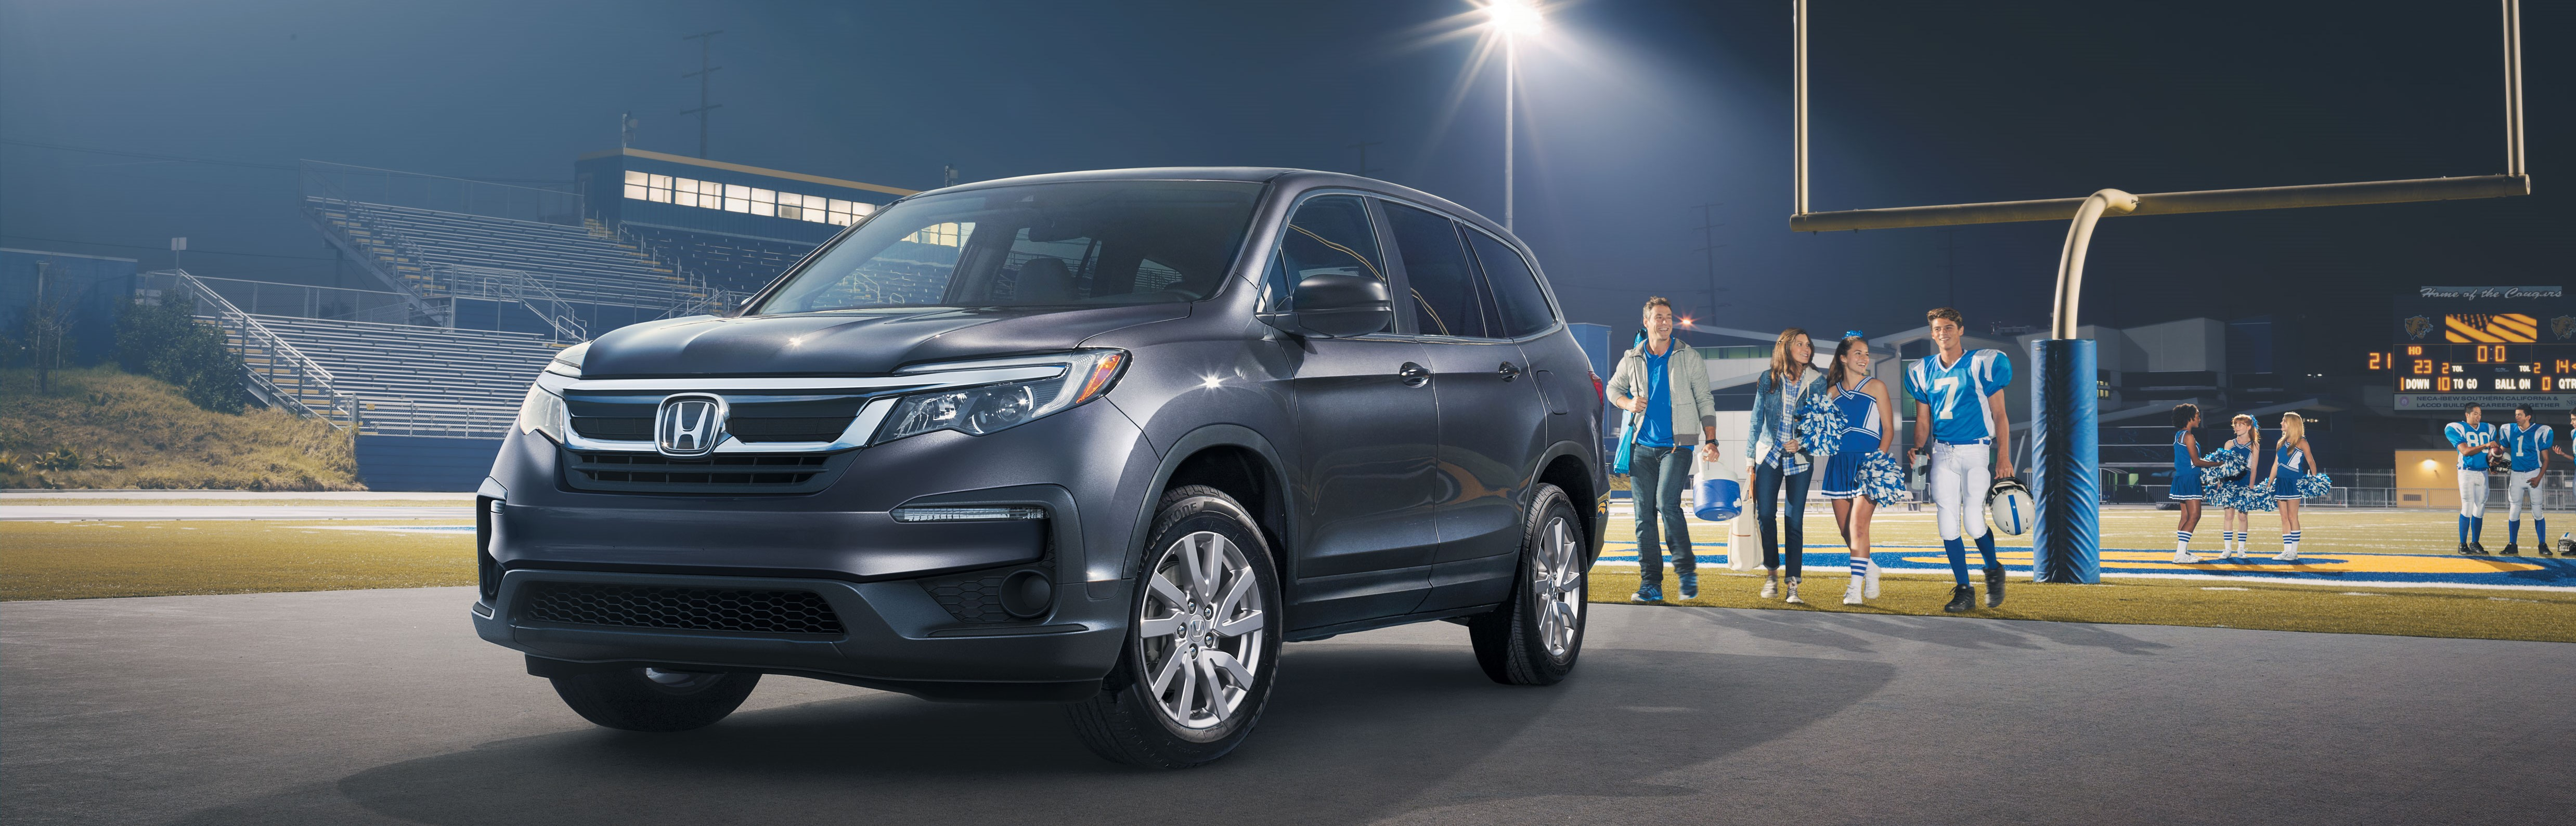 2020 Honda Pilot - New SUVs for Sale in Springfield Missouri